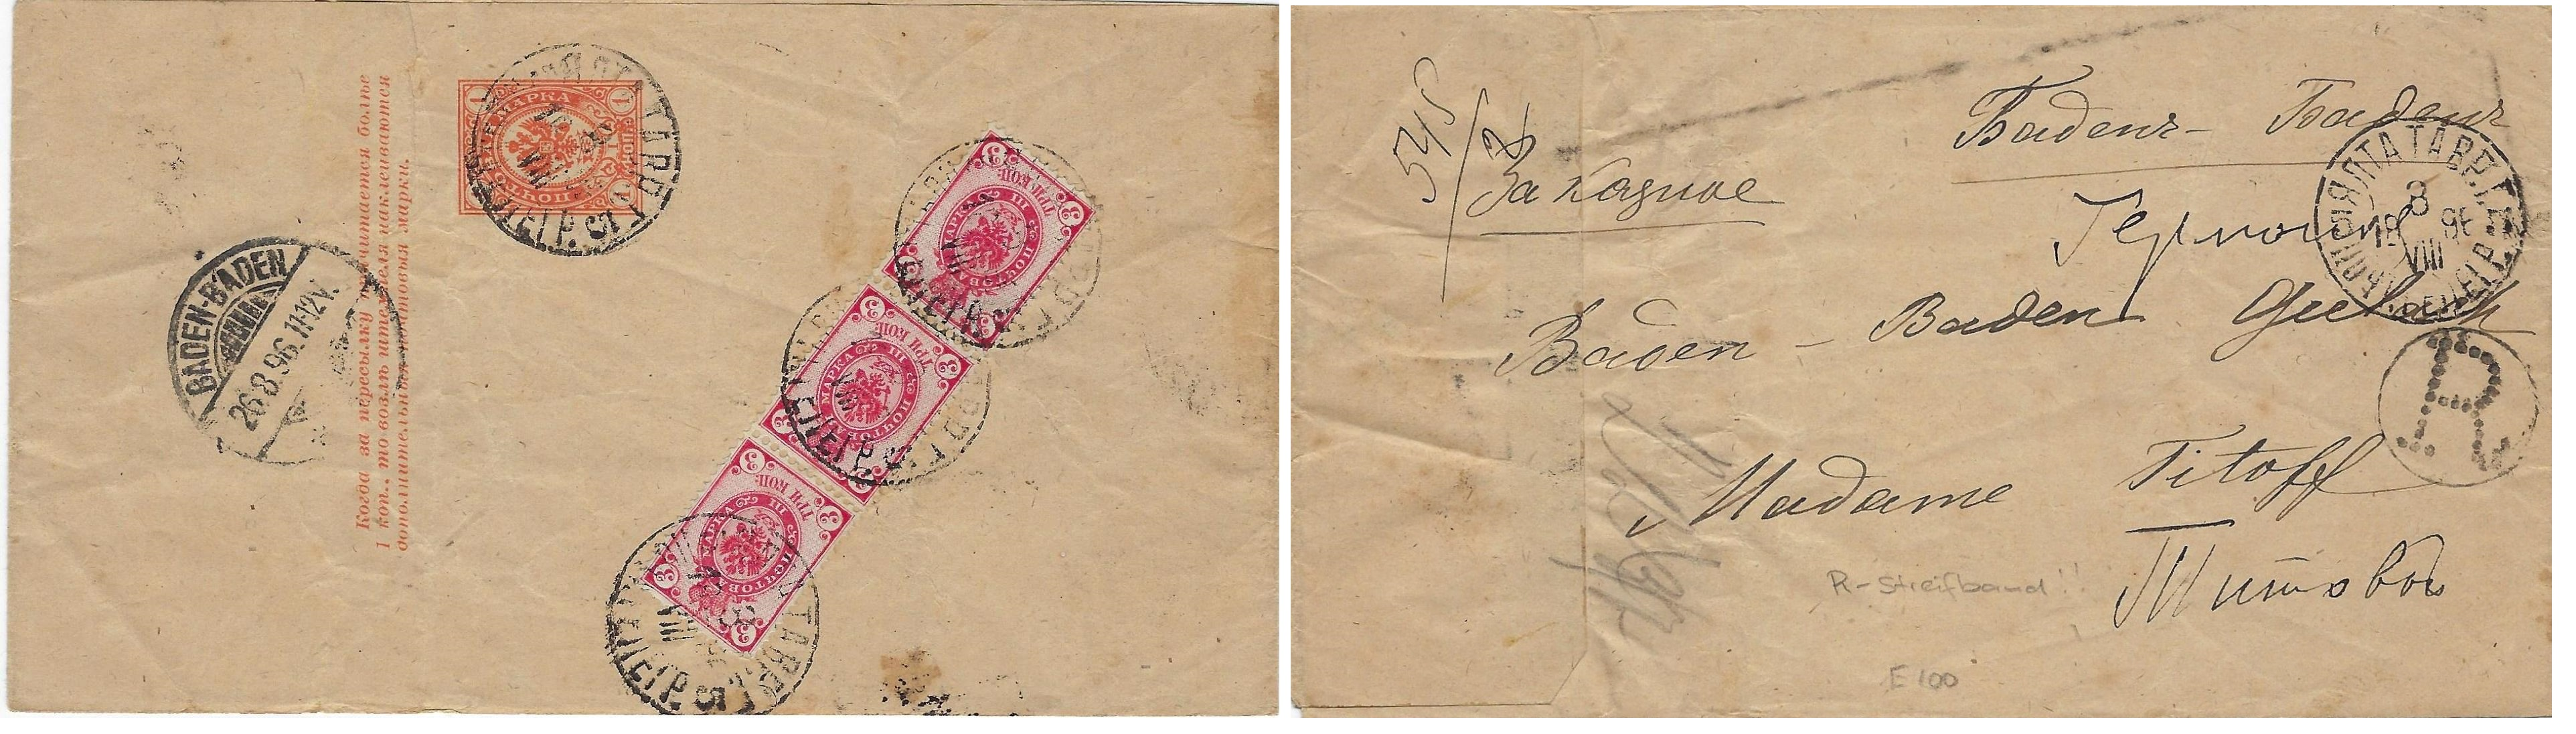 Russia Postal History - Stampless Covers Astrakhan Scott 1011858